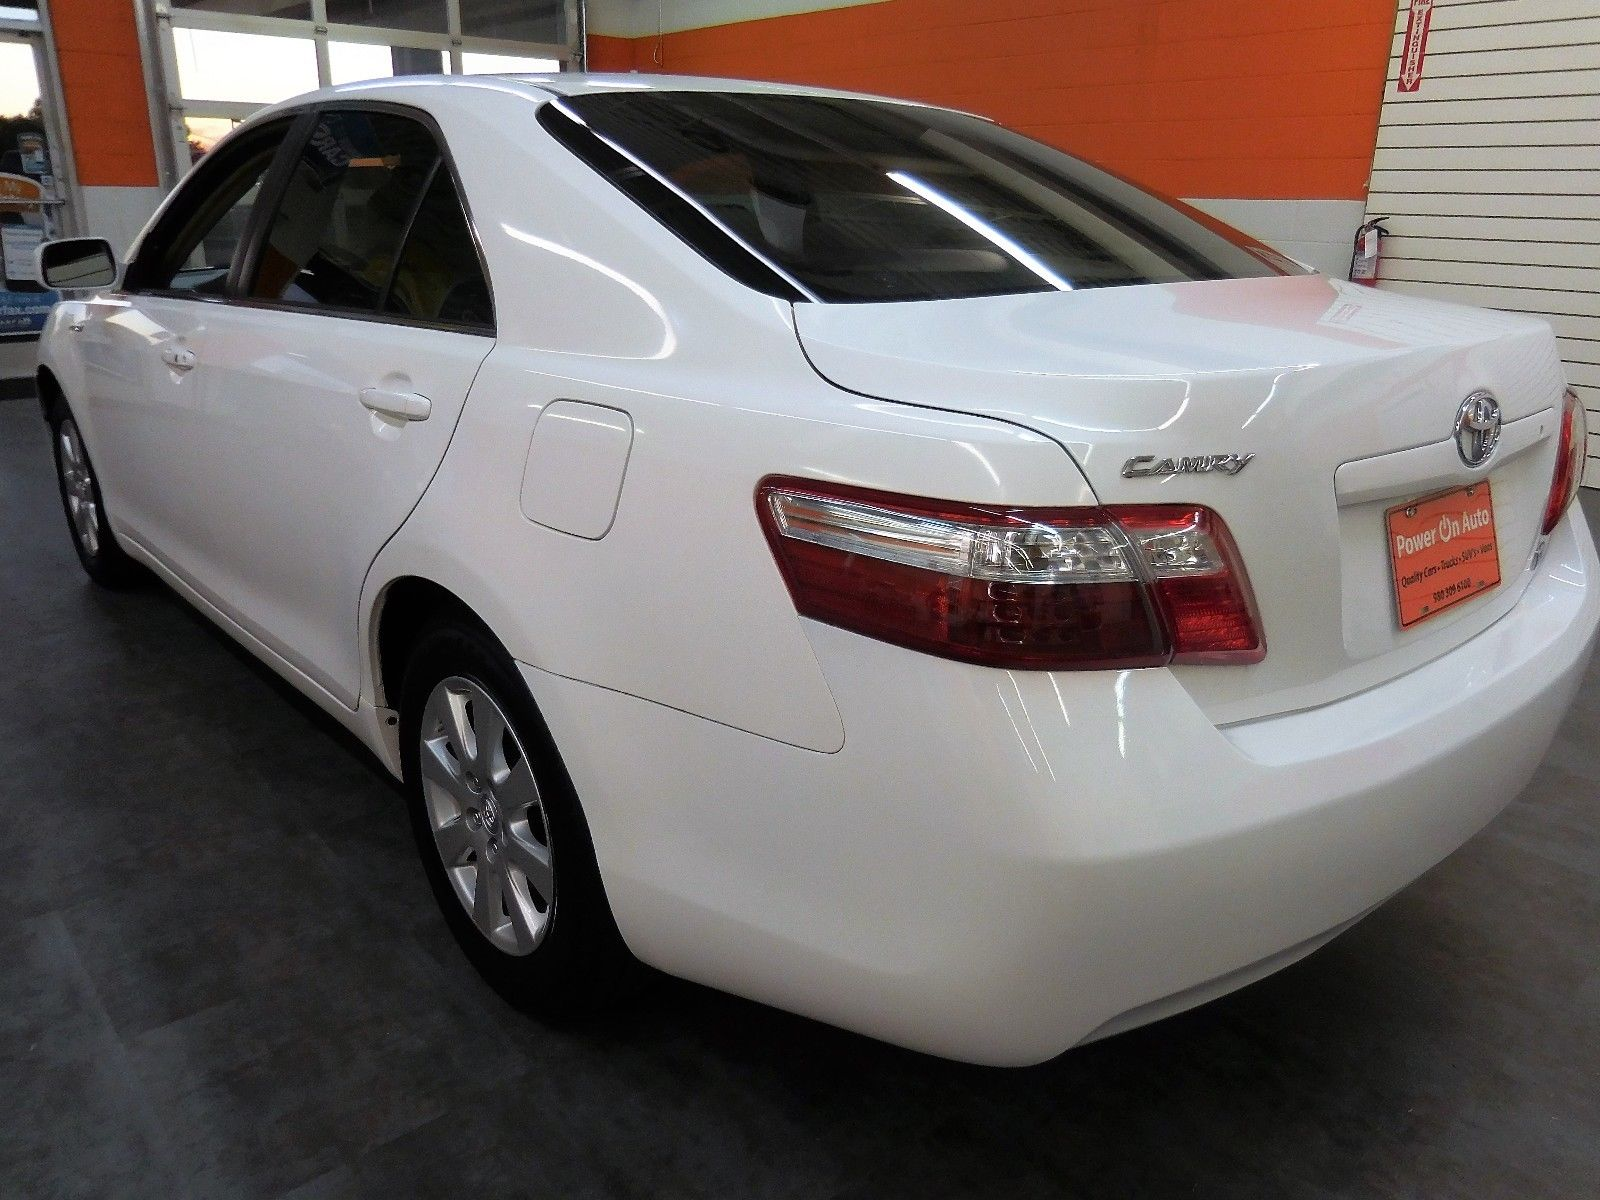 Awesome 2007 Toyota Camry Hybrid Uper Cool Brand New Battery Ed With 5 Yea 2017 2018